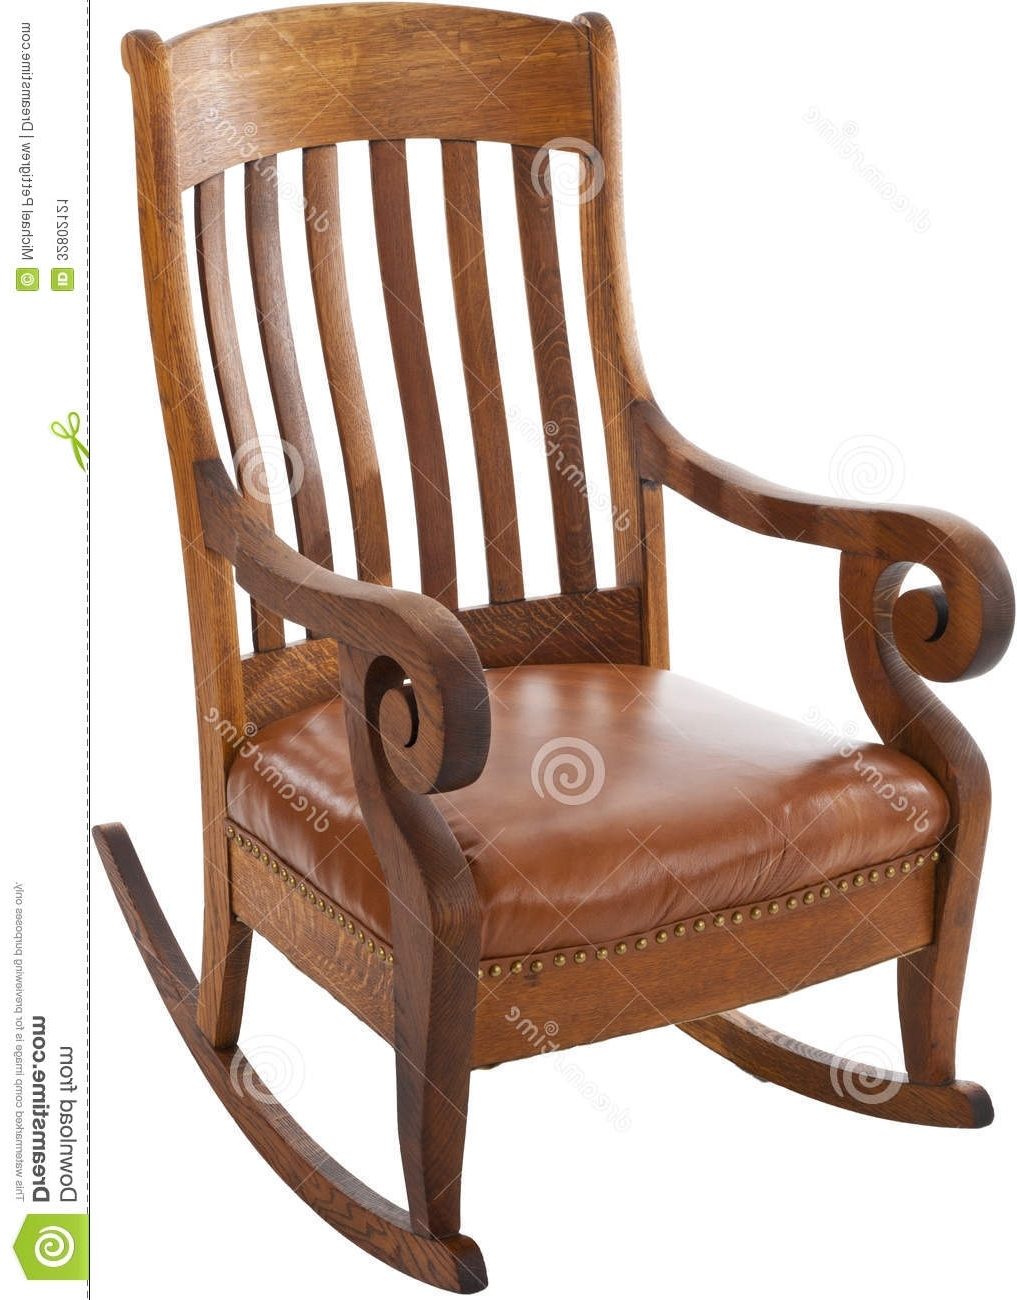 Mesmerizing Antique Rocking Chair Hd Photos Bed No Arms For Sale In Famous Old Fashioned Rocking Chairs (View 3 of 15)